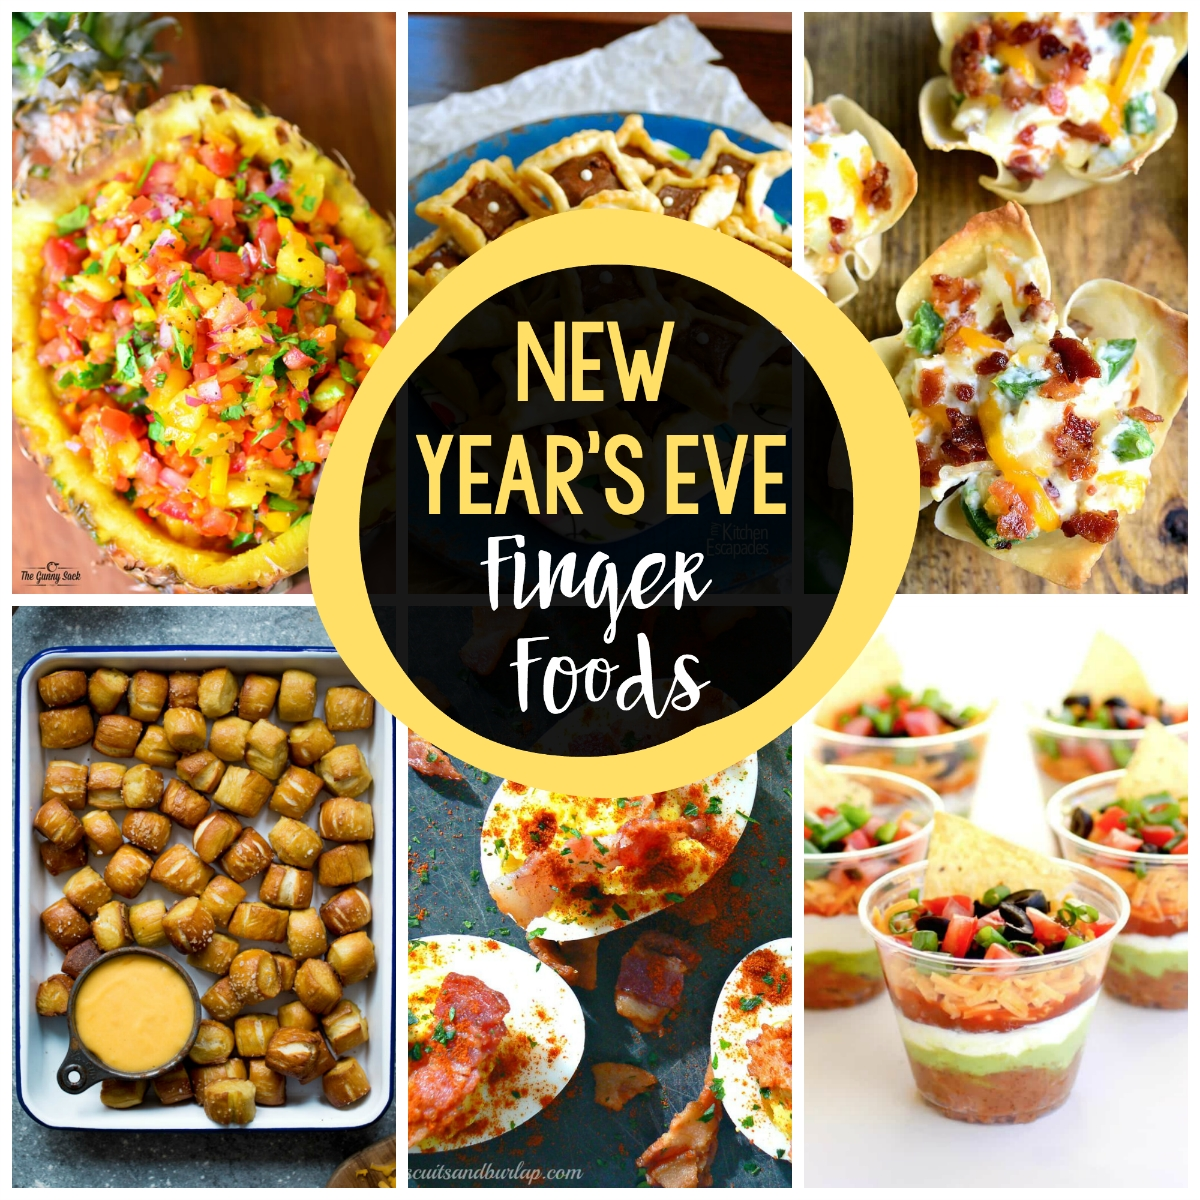 10 Gorgeous New Years Eve Dinner Ideas Menu 25 new years eve finger foods crazy little projects 1 2020